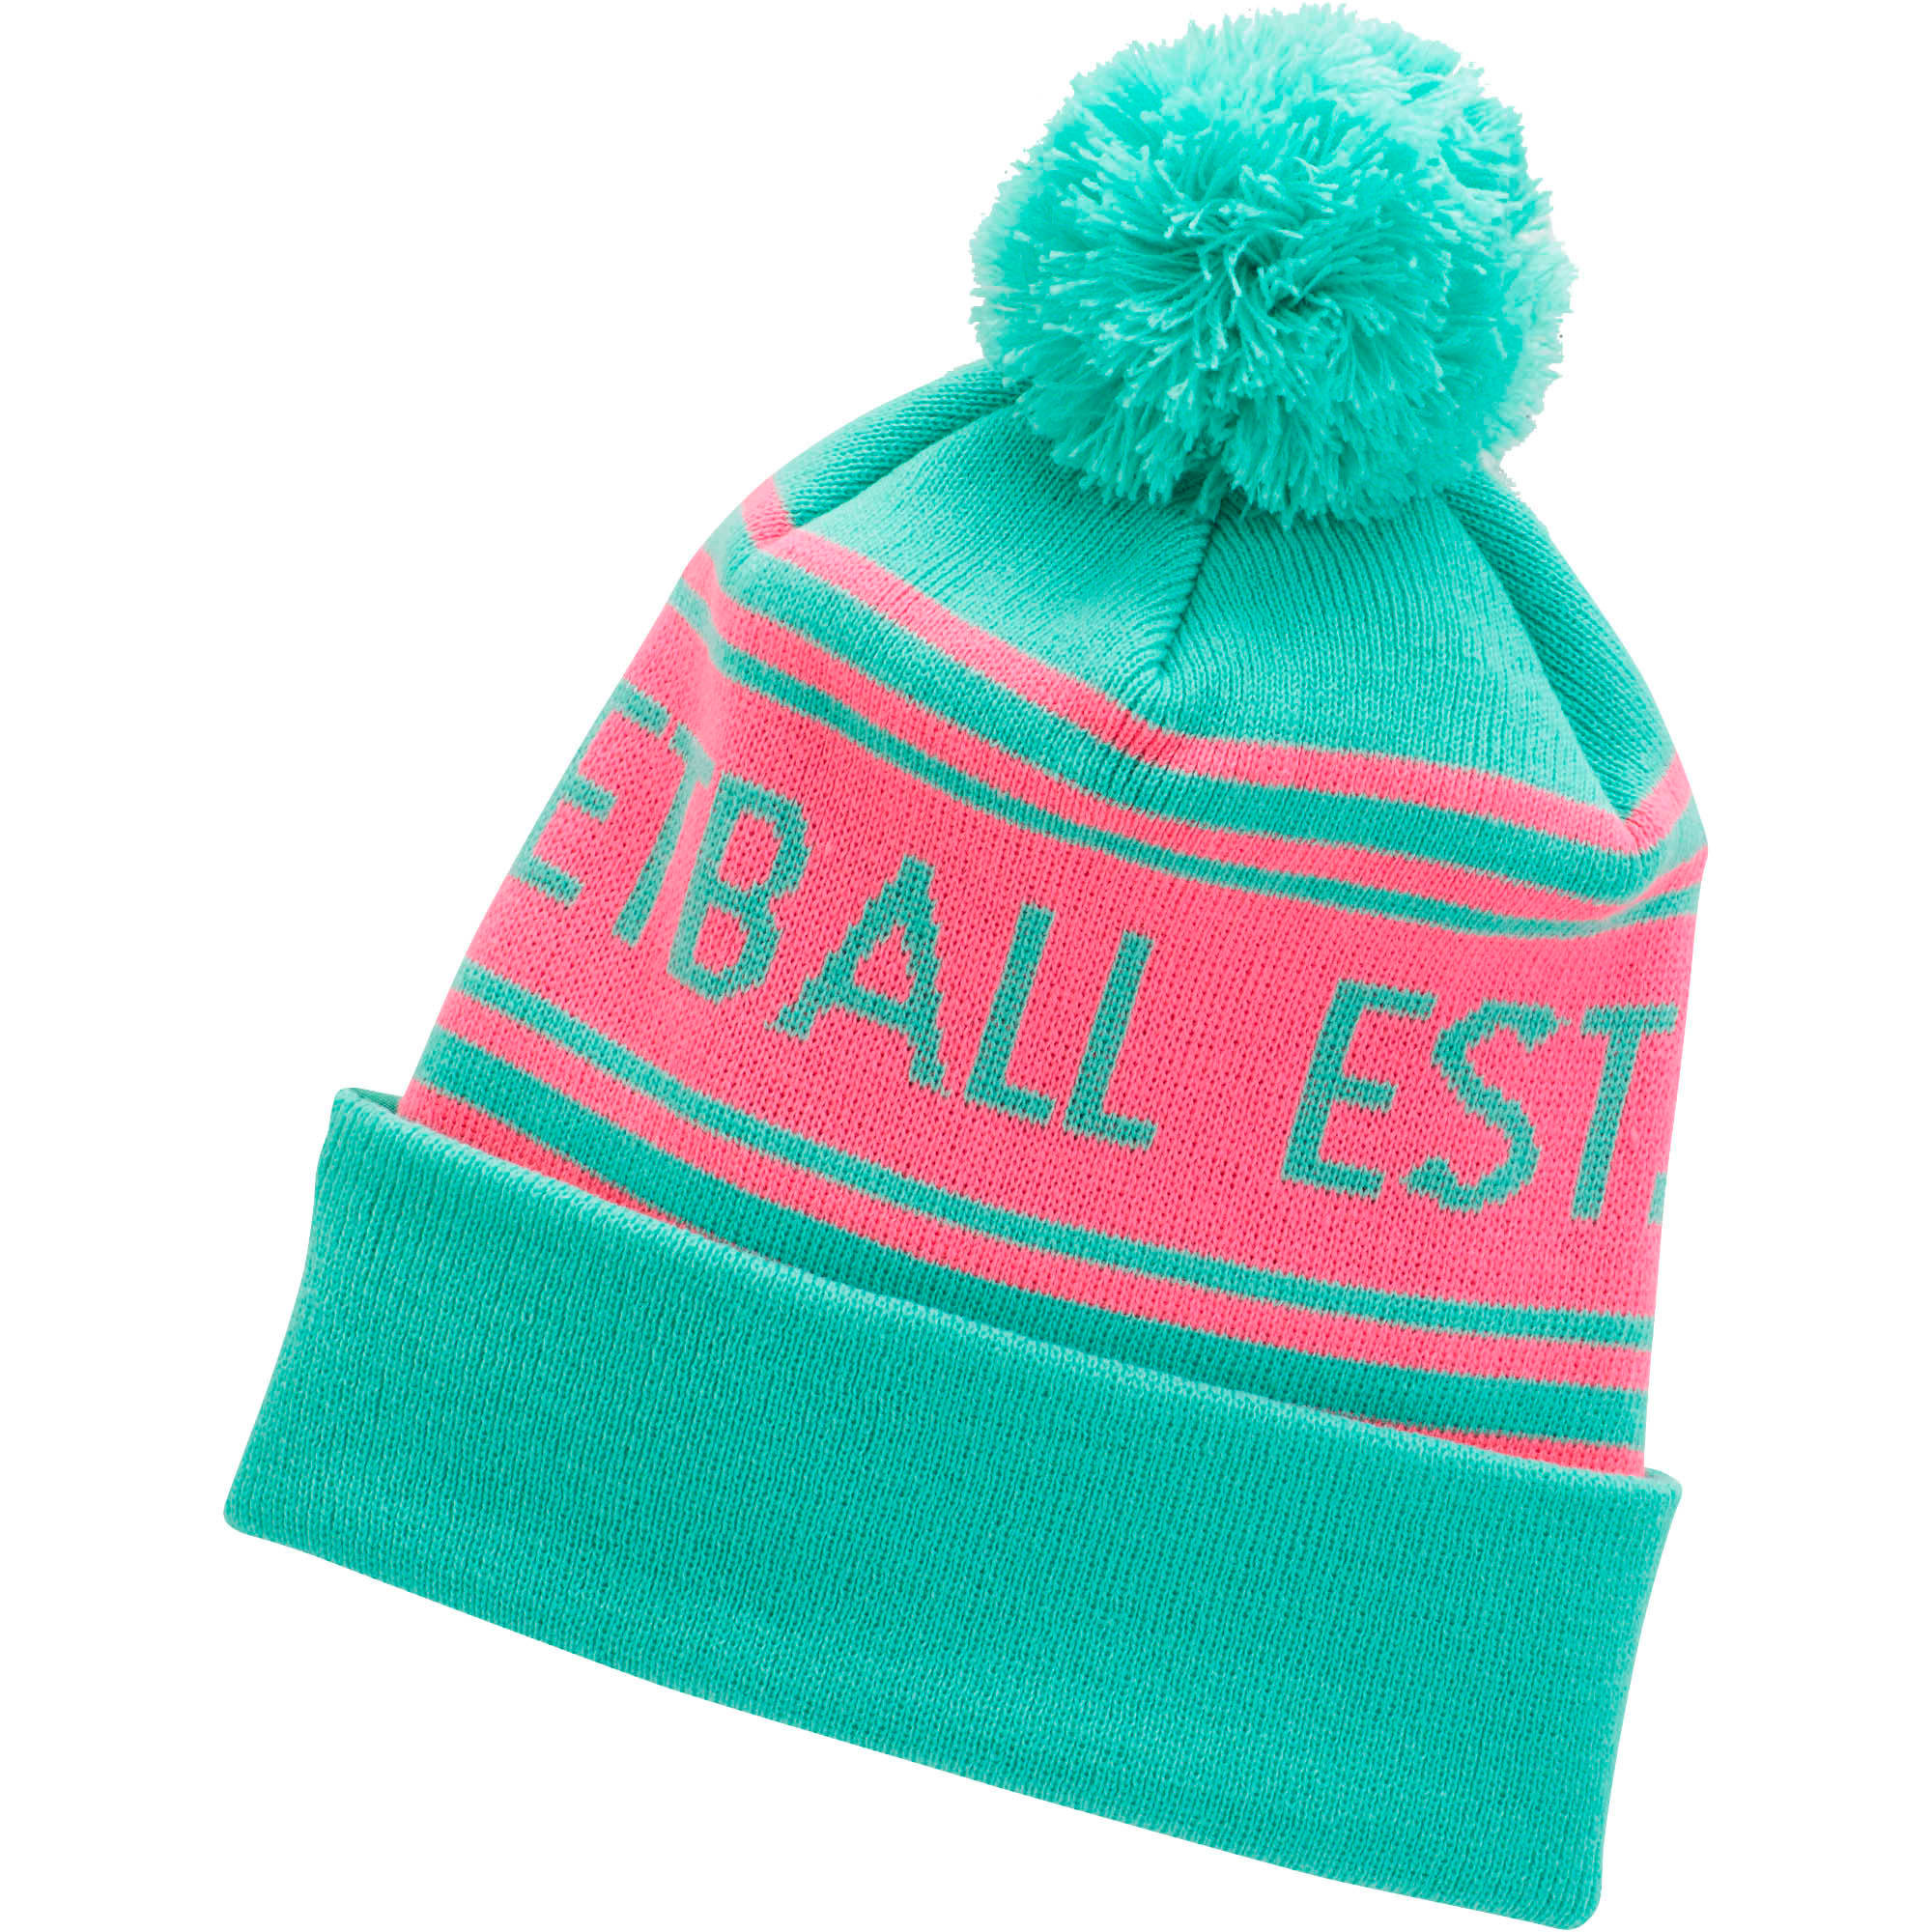 PUMA Basketball Pom Beanie, BRIGHT GREEN / PINK, large